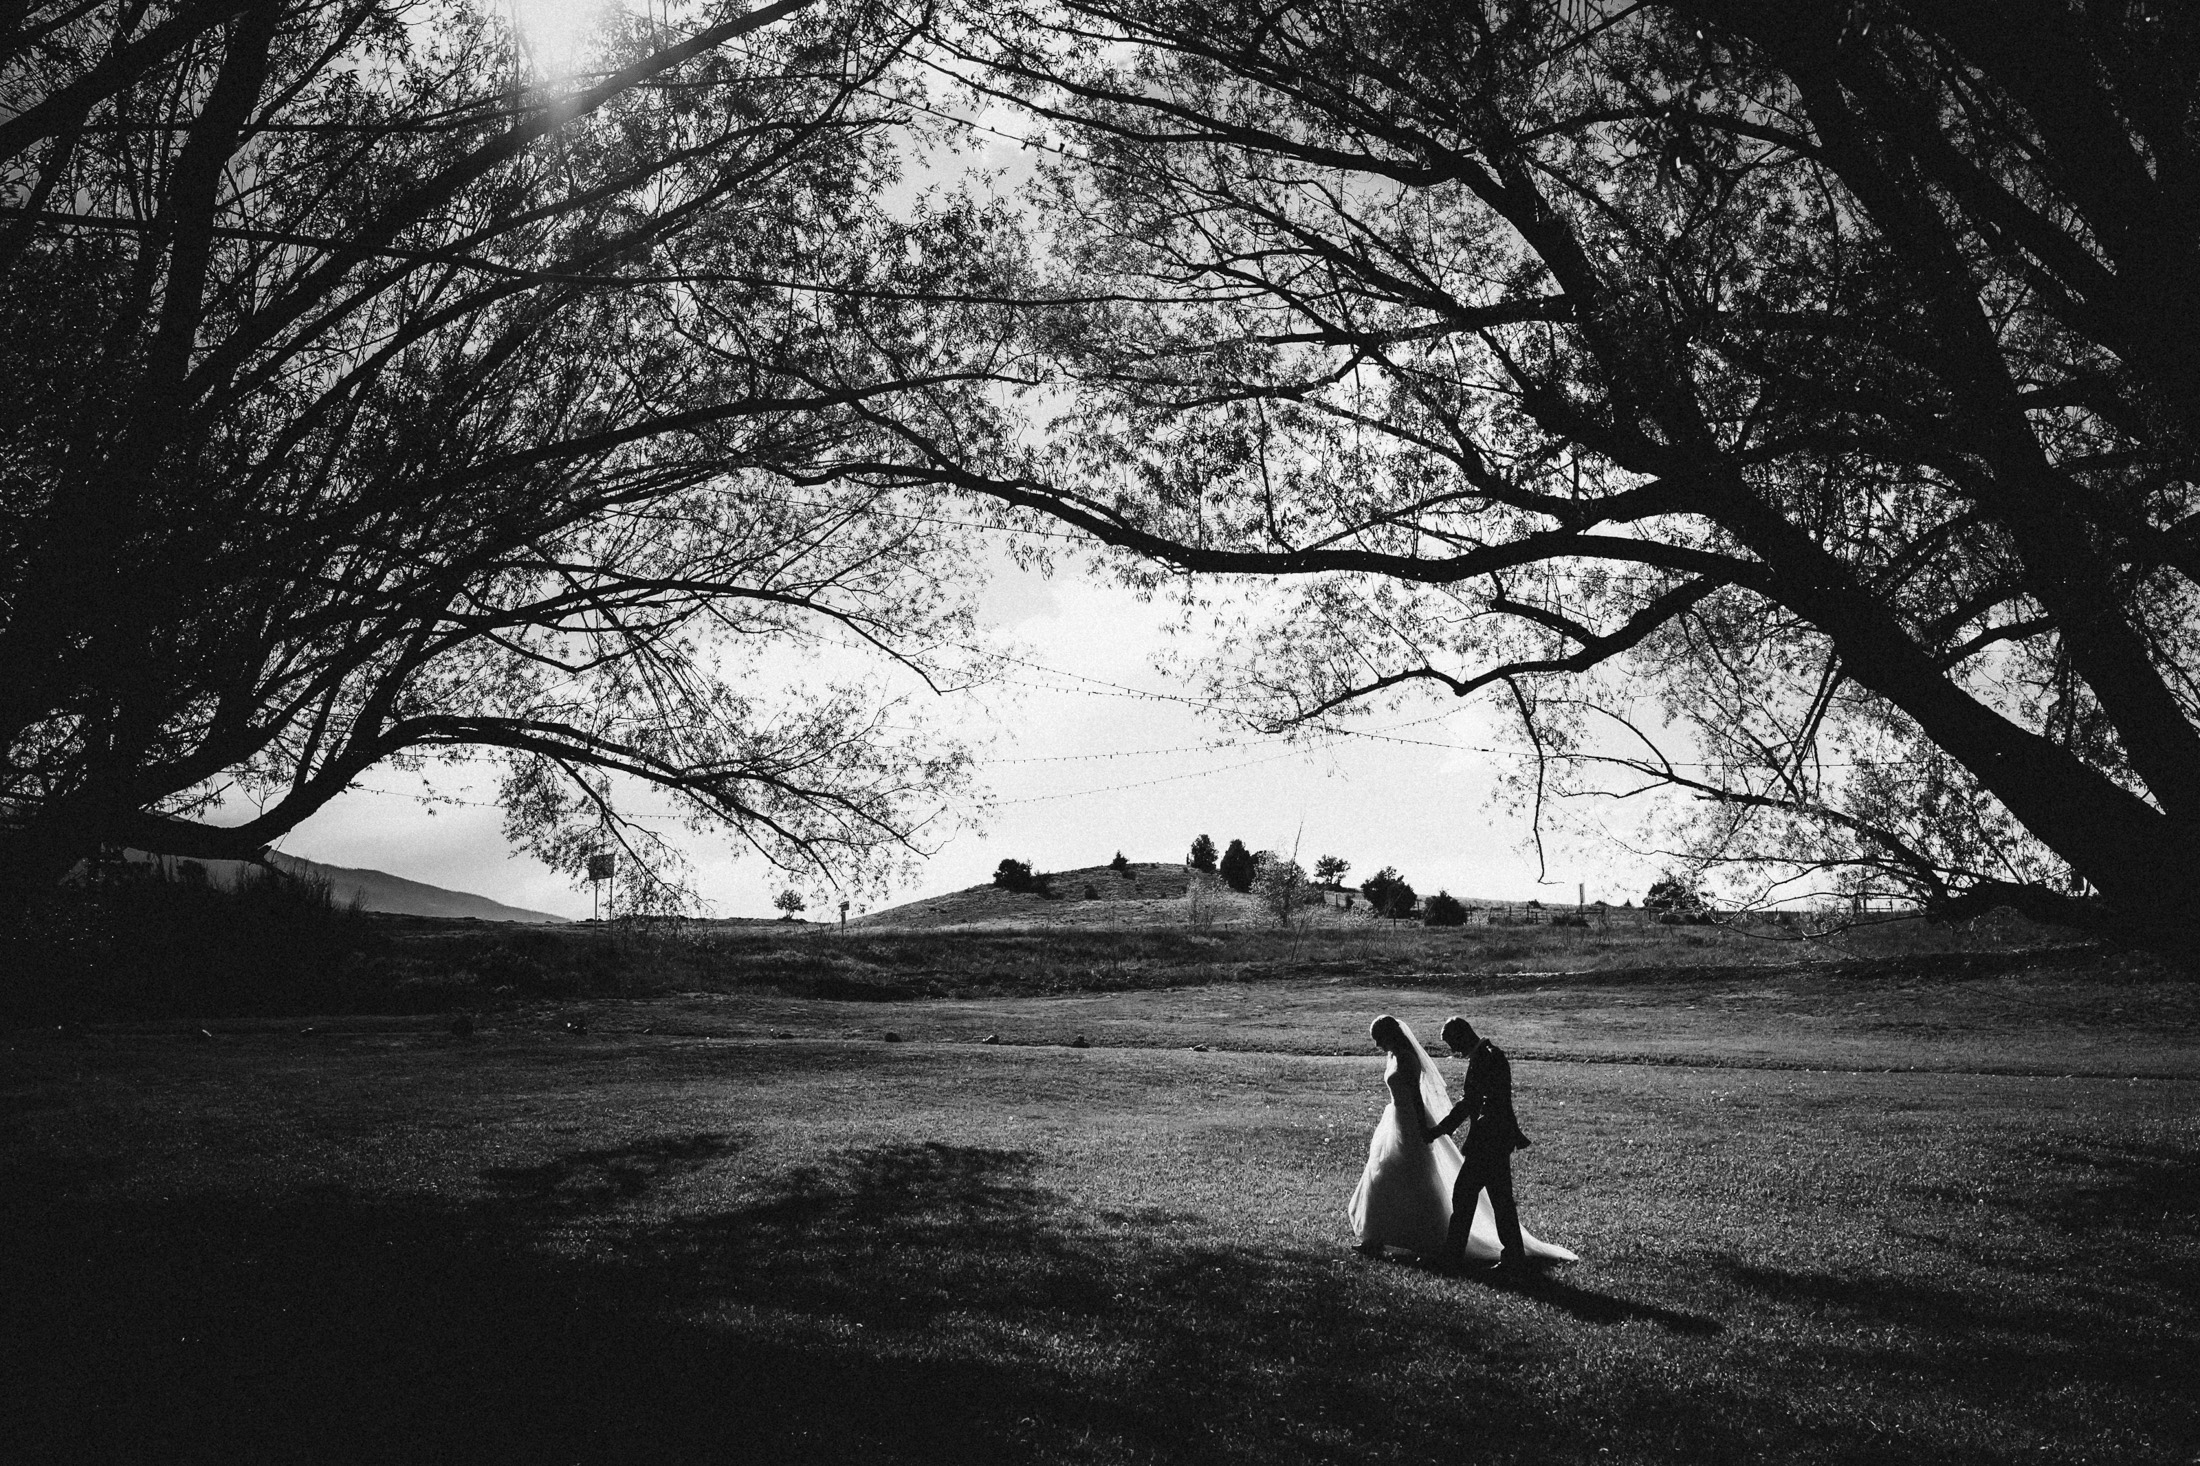 Black and white photograph of bride and groom walking underneath Willow trees.